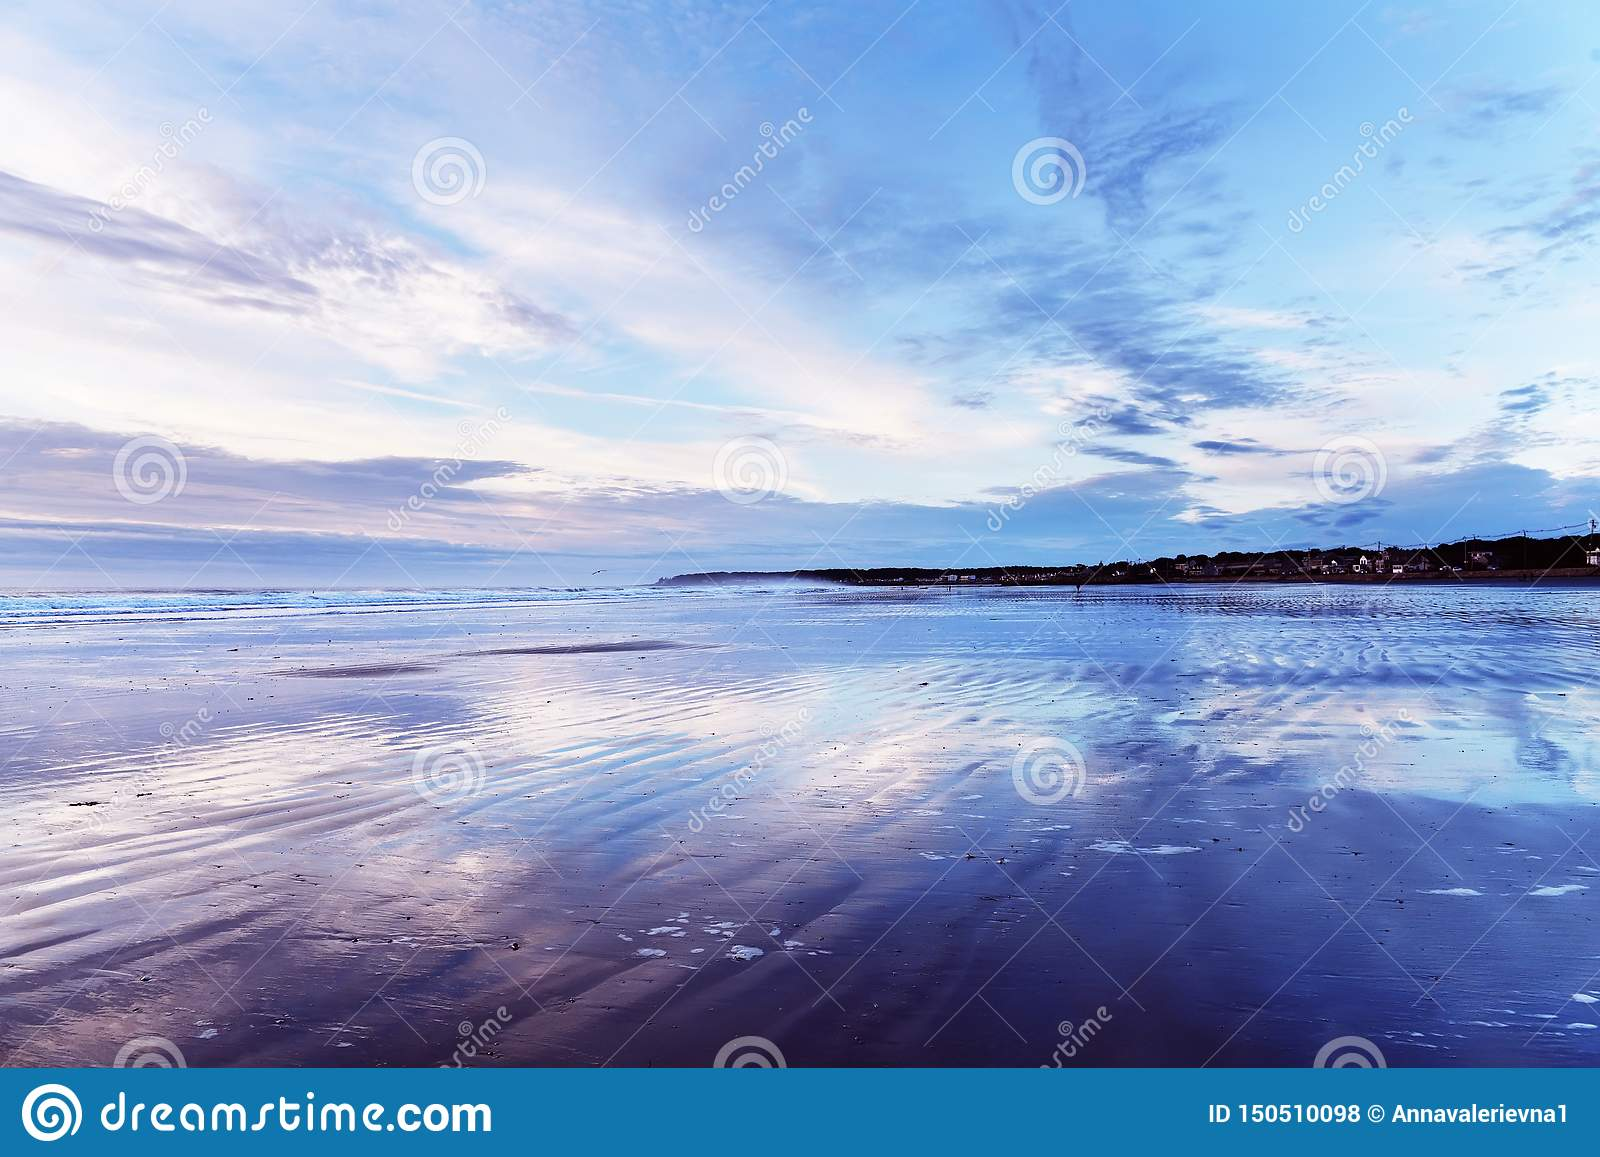 Early morning on the Atlantic coast. Reflection of the dawn sky in the water on the sand. USA. Maine.